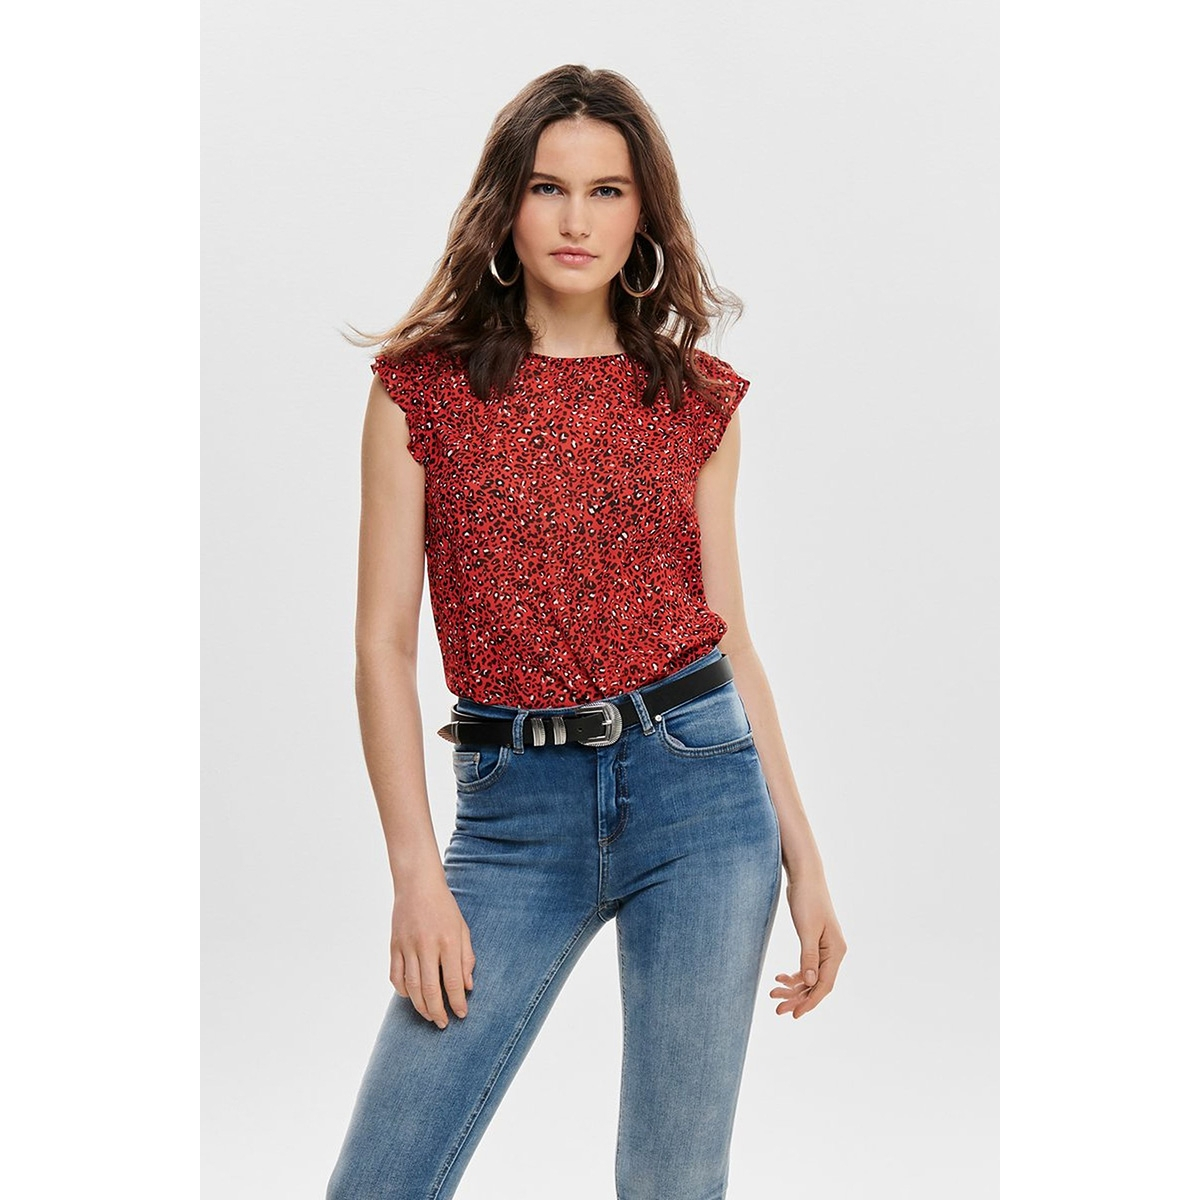 onlstar s/l chiffon top wvn 15173854 only top flame scarlet/star leo